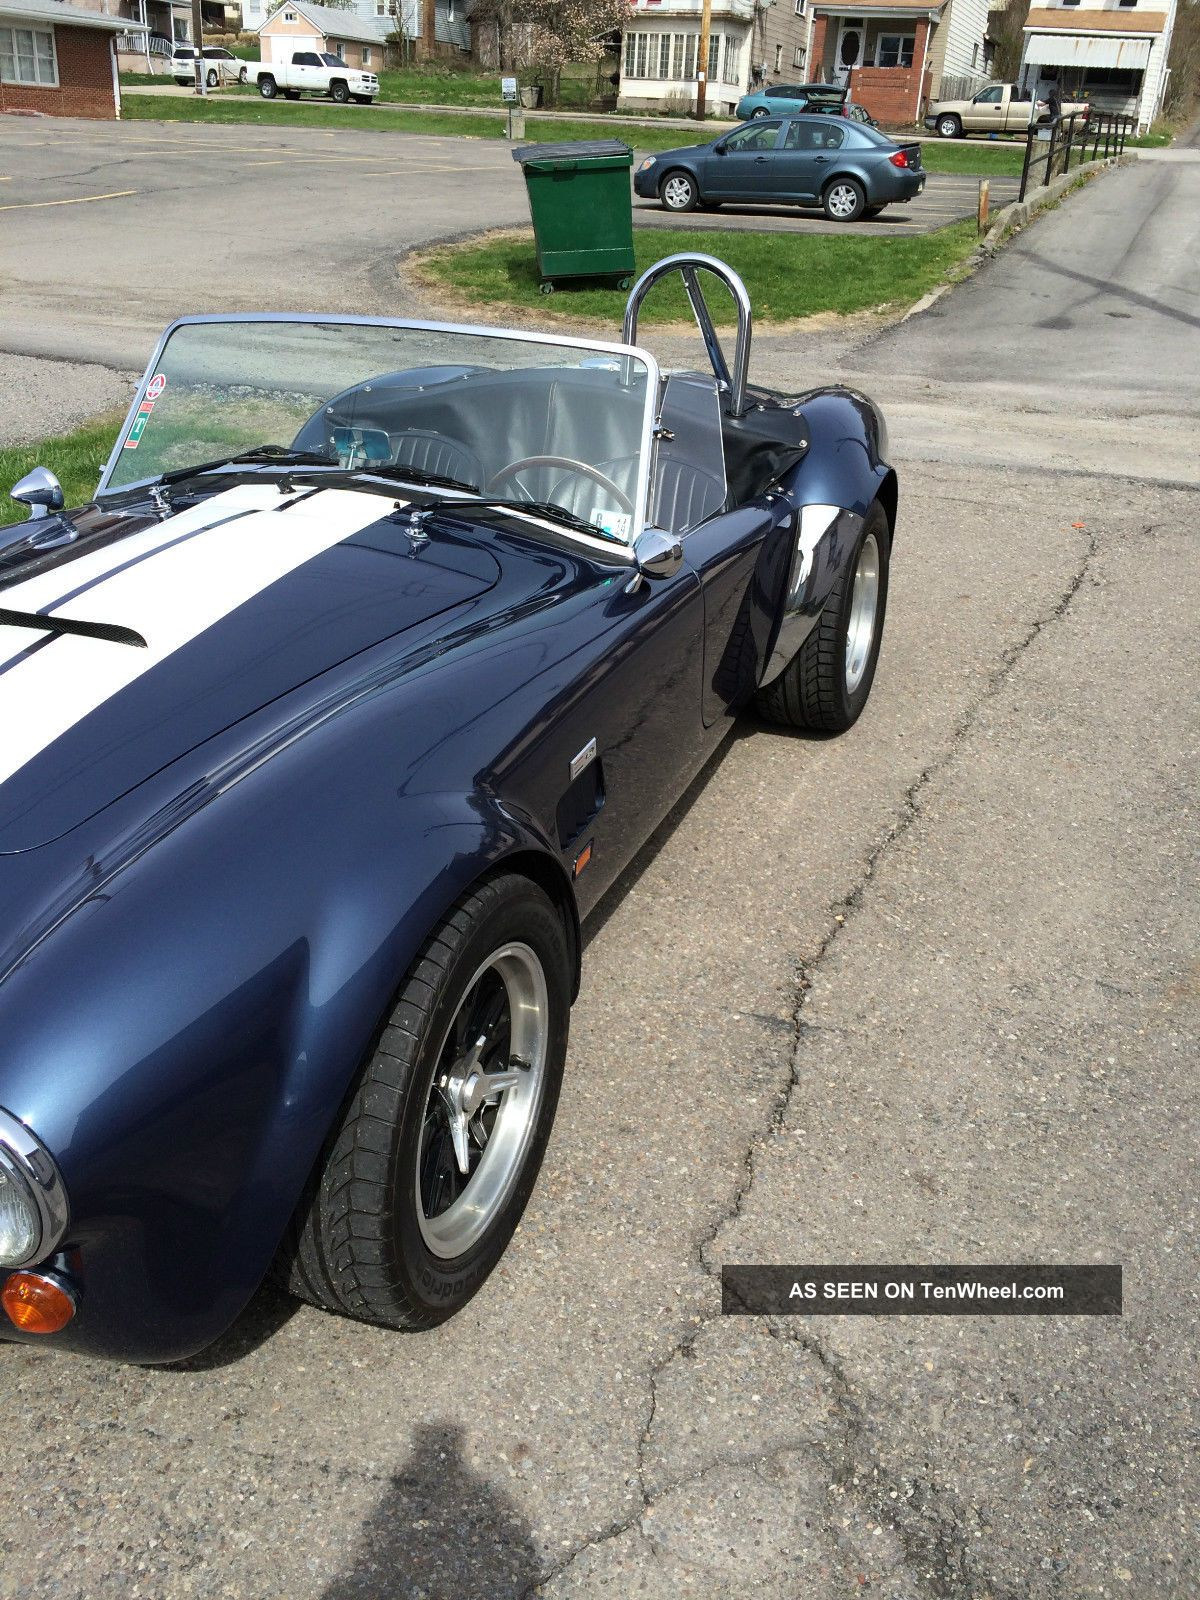 1985 Autokraft Mkiv Cobra Roush All Aluminum Engine 5 Speed Very Fast Other Makes photo